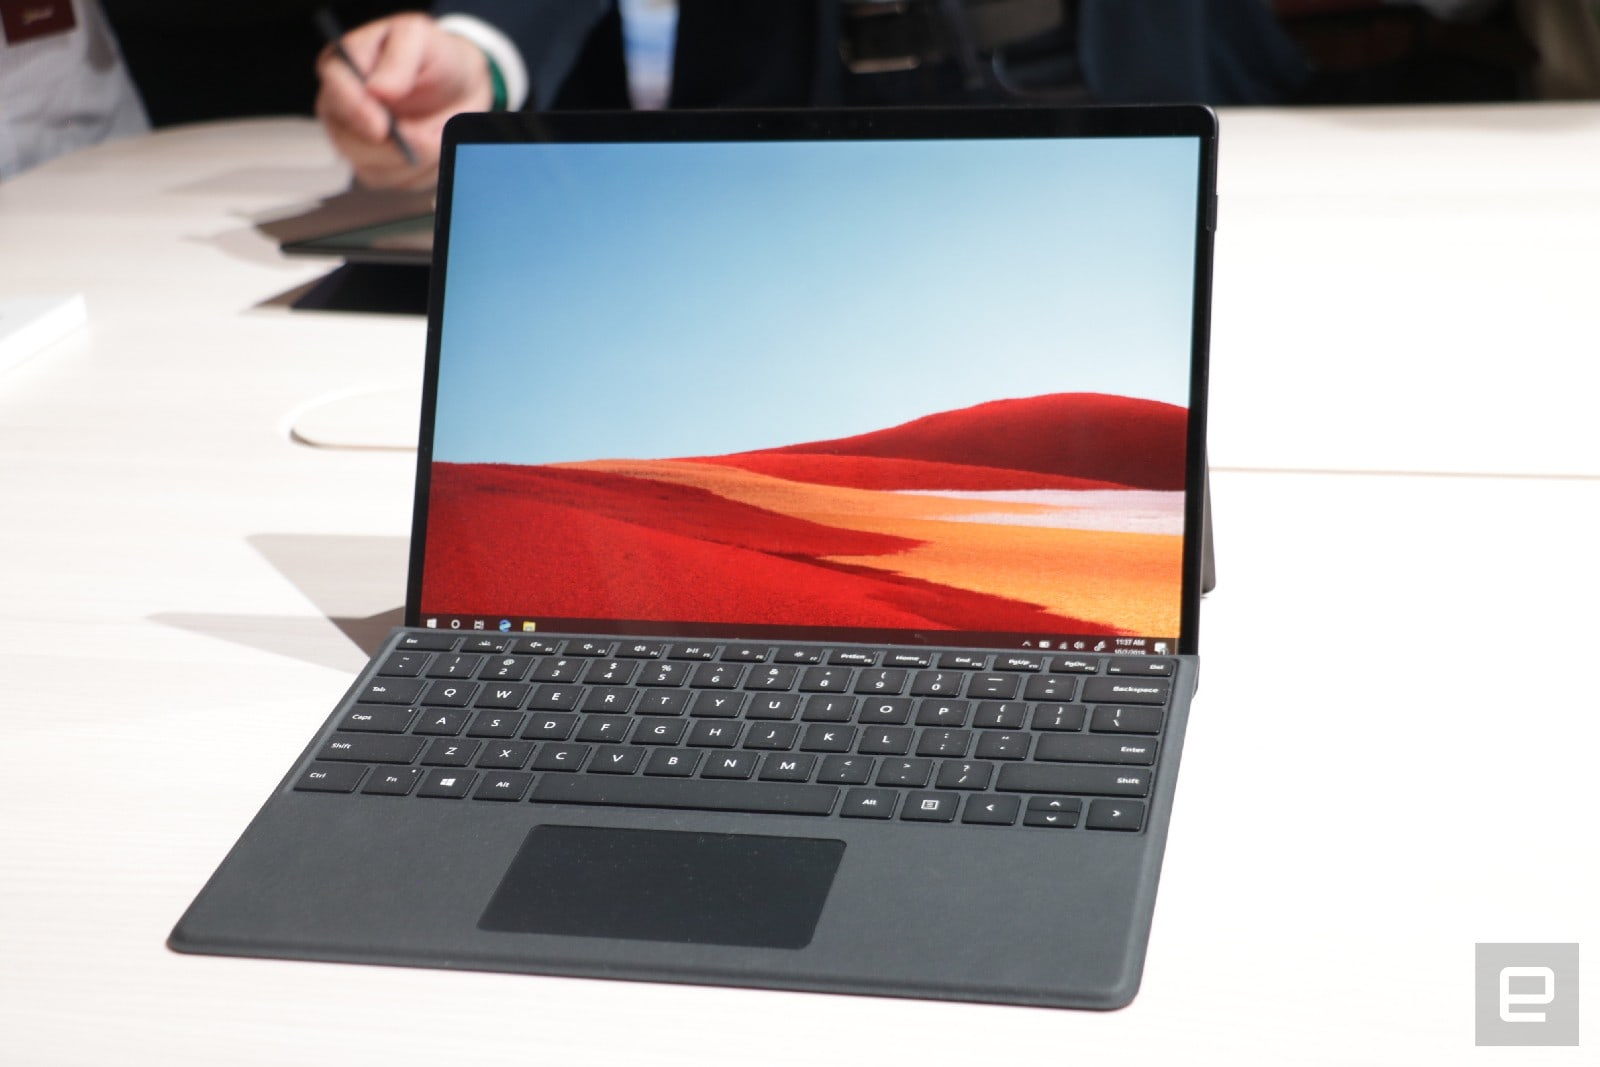 Surface Pro X hands-on: Microsoft tries Windows on ARM again